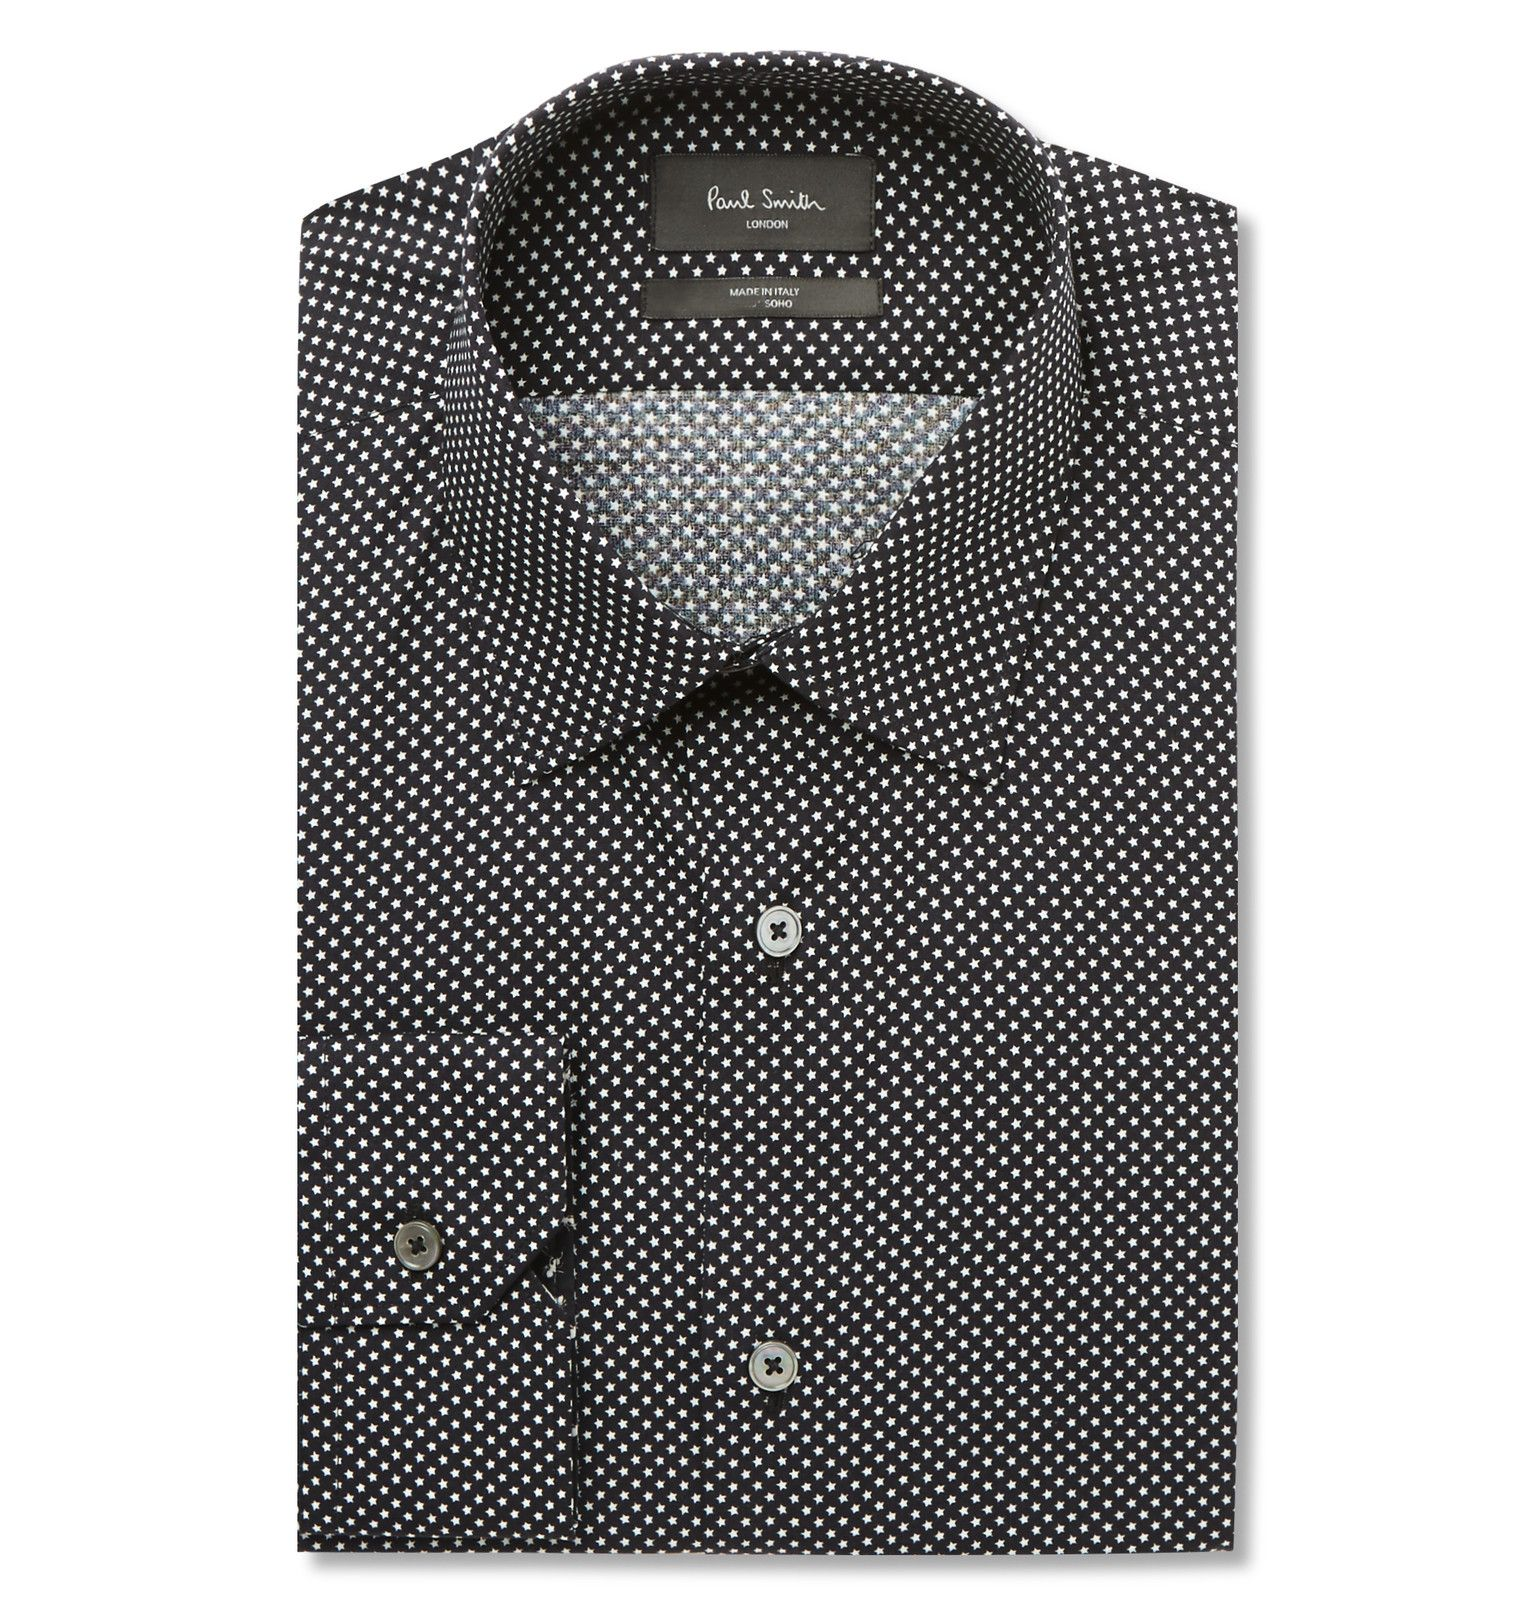 Cut in a contemporary slim fit <a href='http://www.mrporter.com/mens/Designers/Paul_Smith'>Paul Smith</a>'s 'Soho' style is the brand's shirting calling-card. Its narrow yoke and neat darts ensure a sleek profile. Part of the latest collection this updated version is detailed with a refined micro-star print that offers a welcome change to traditional white or blue solids. It will look impeccable worn with classic black suiting.